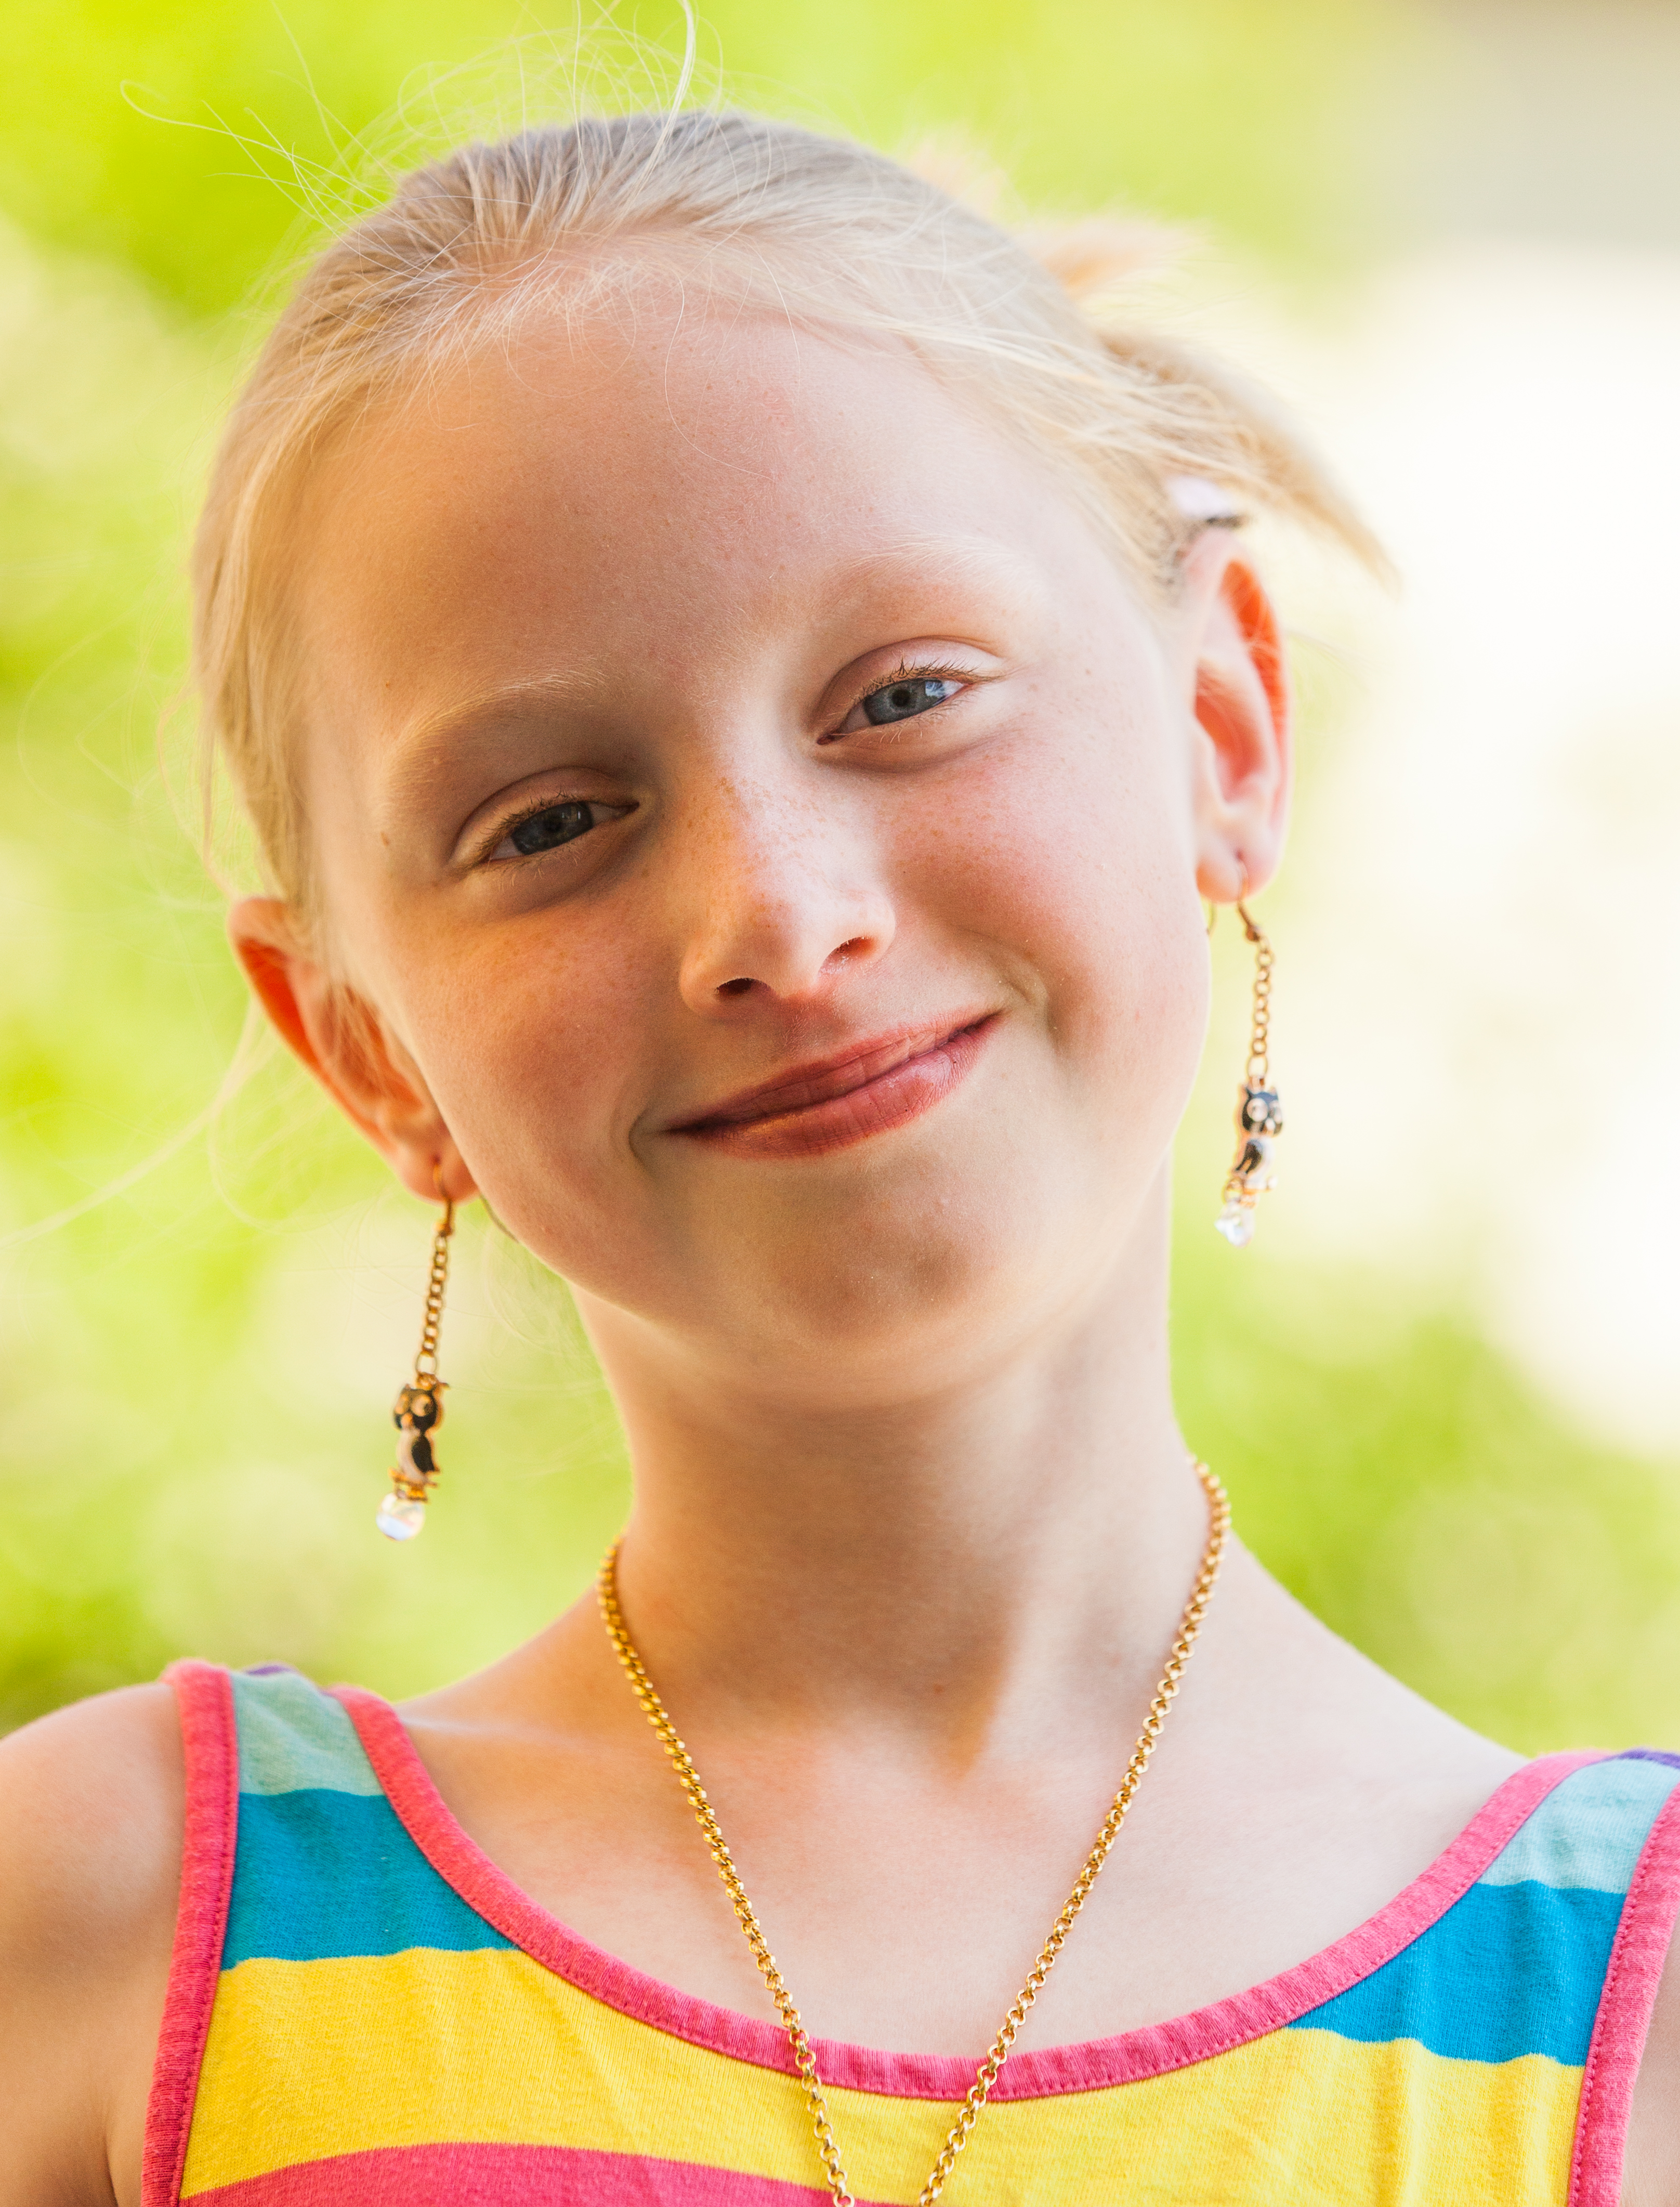 a cute young blond Catholic girl photographed in May 2014, portrait 2/12